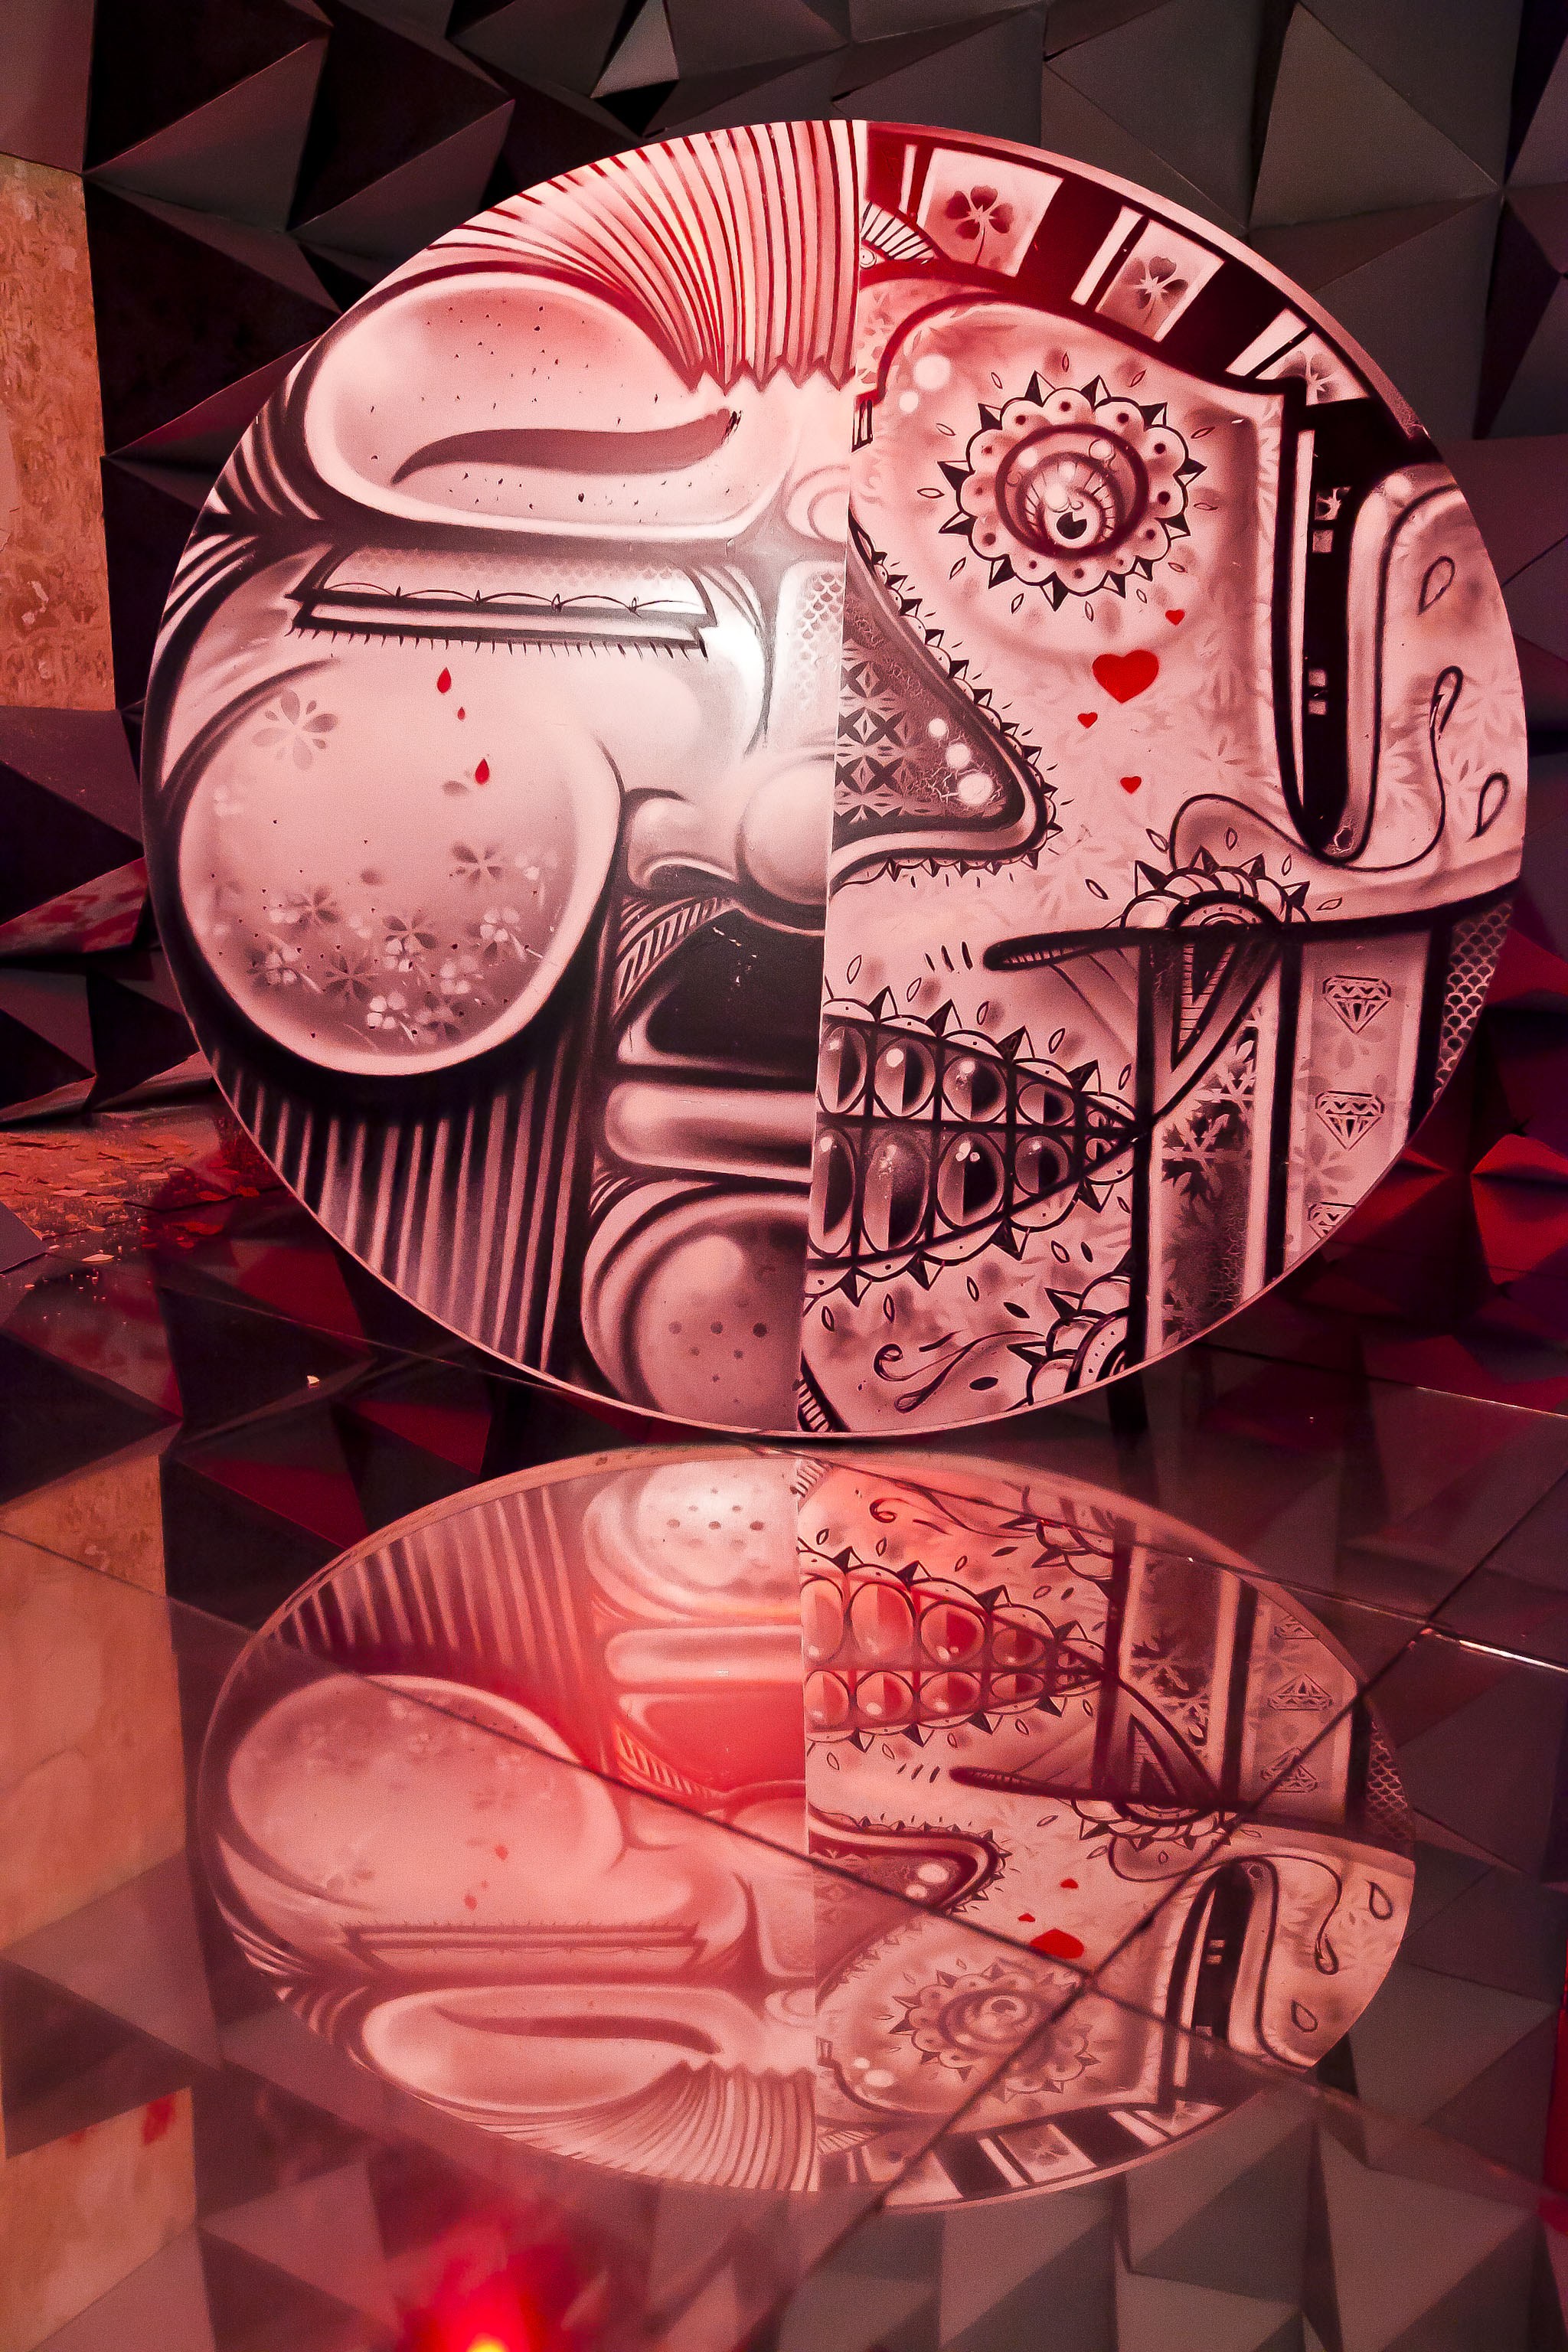 """'""""Reflections,"""" created by artists How and Nosm, occupies a second-floor bedroom at the Andrew Freedman Home. Photo by Marisol Diaz/courtesy of The Riverdale Press"""